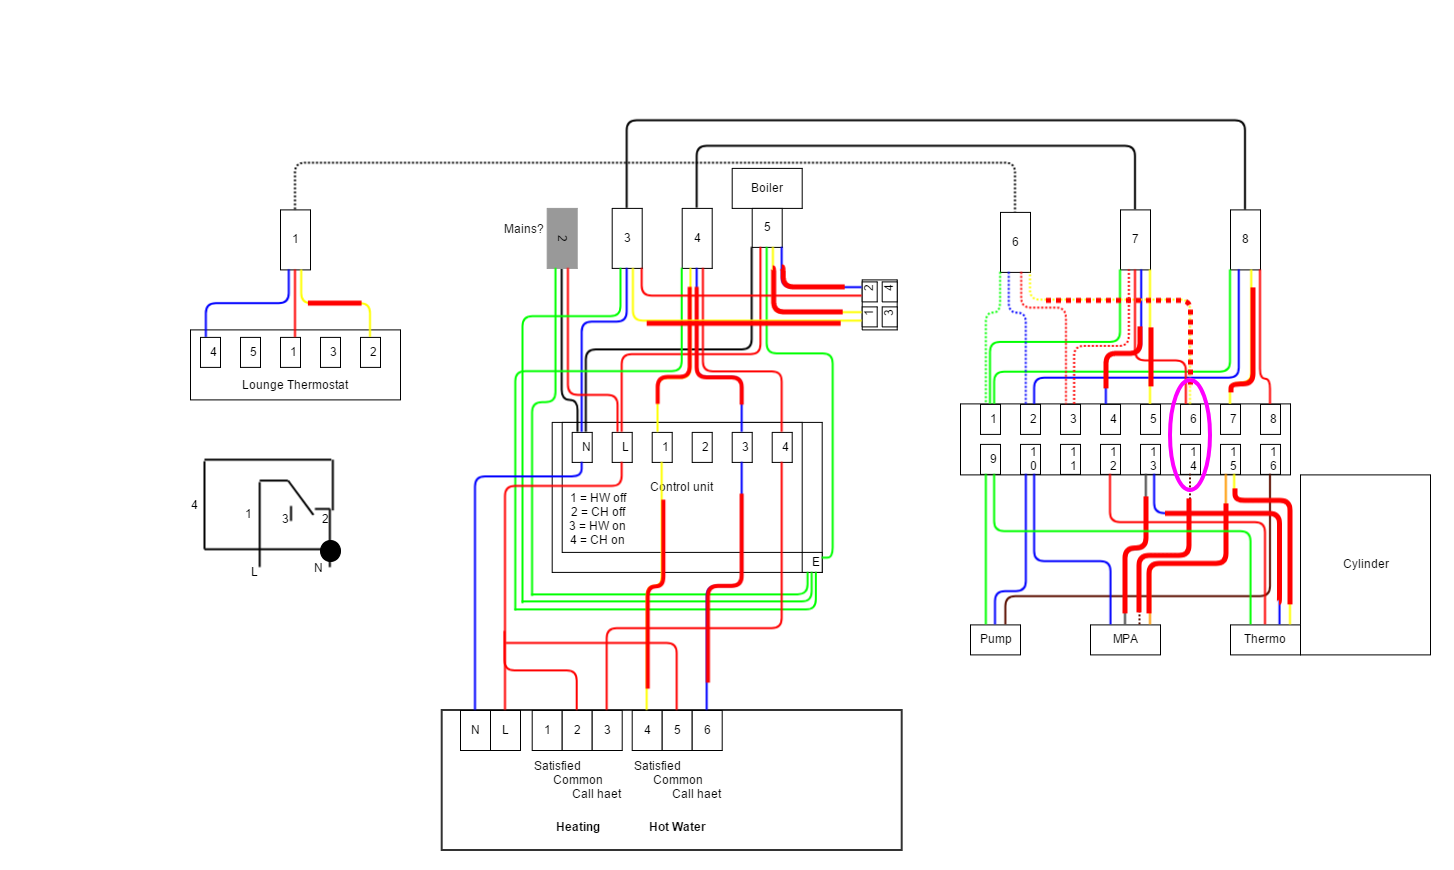 Wiring Diagram For Central Heating System : Y plan wiring diagram images